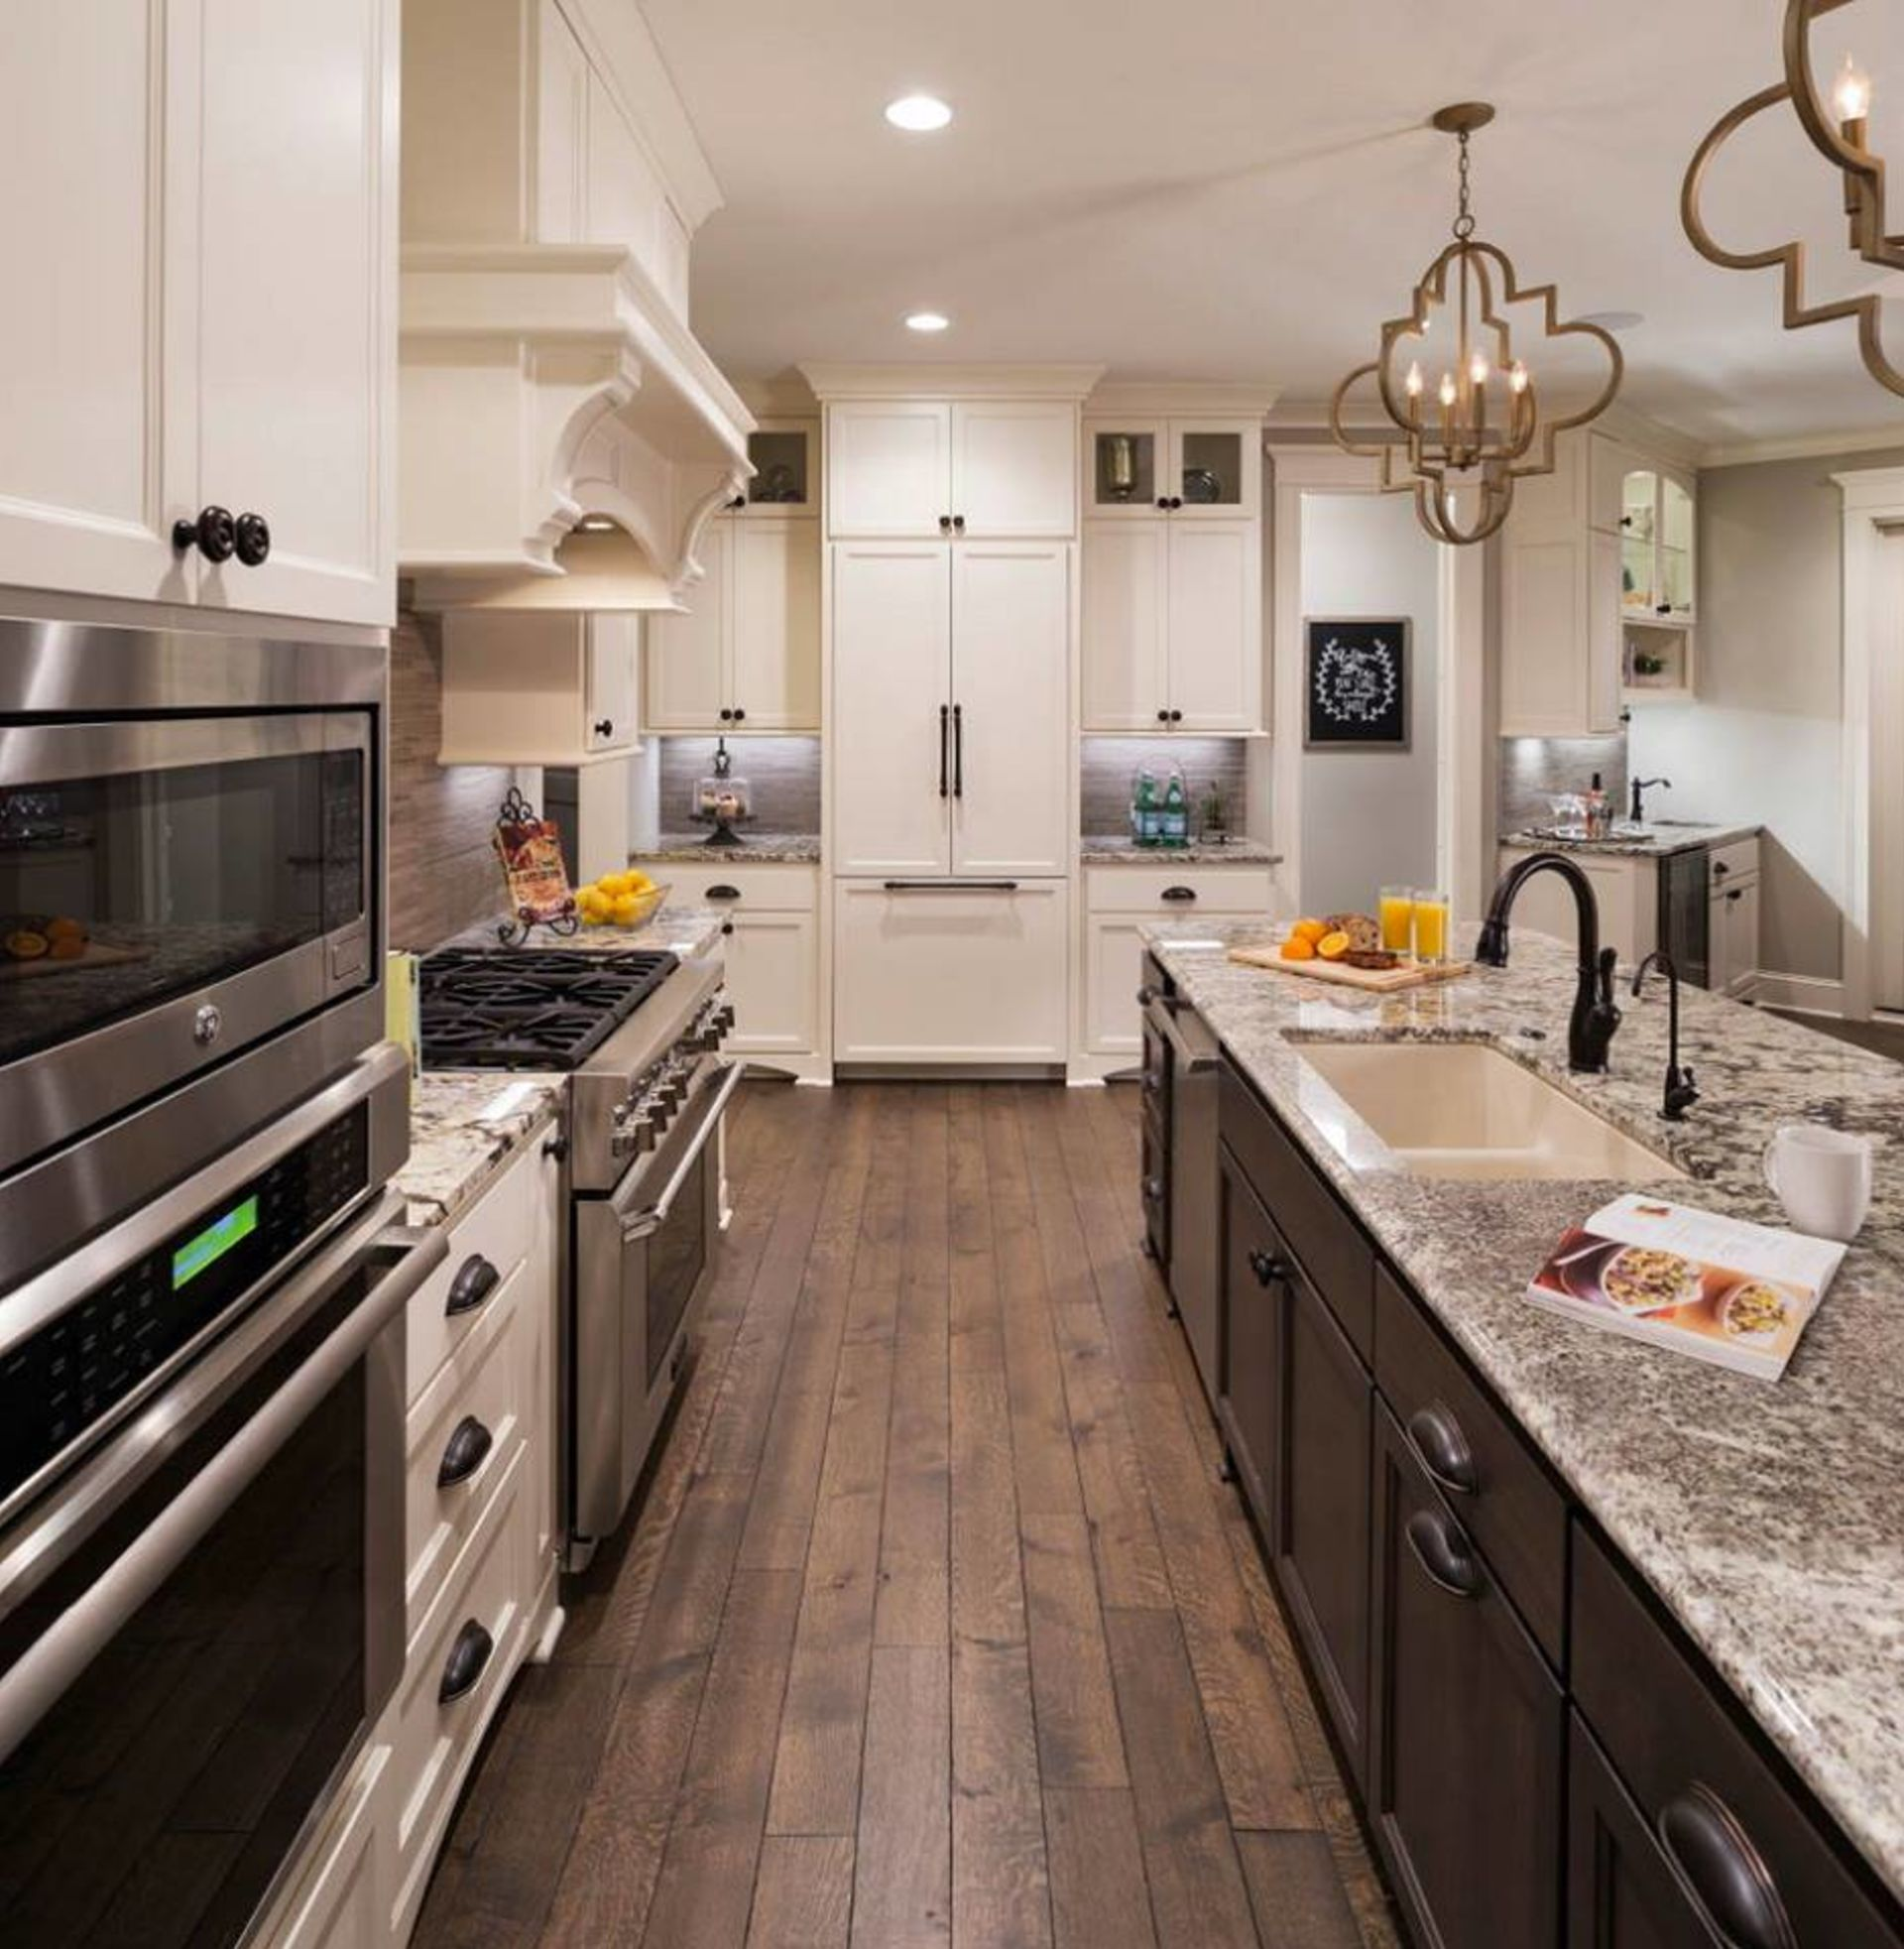 How to keep your appliances in tip-top shape